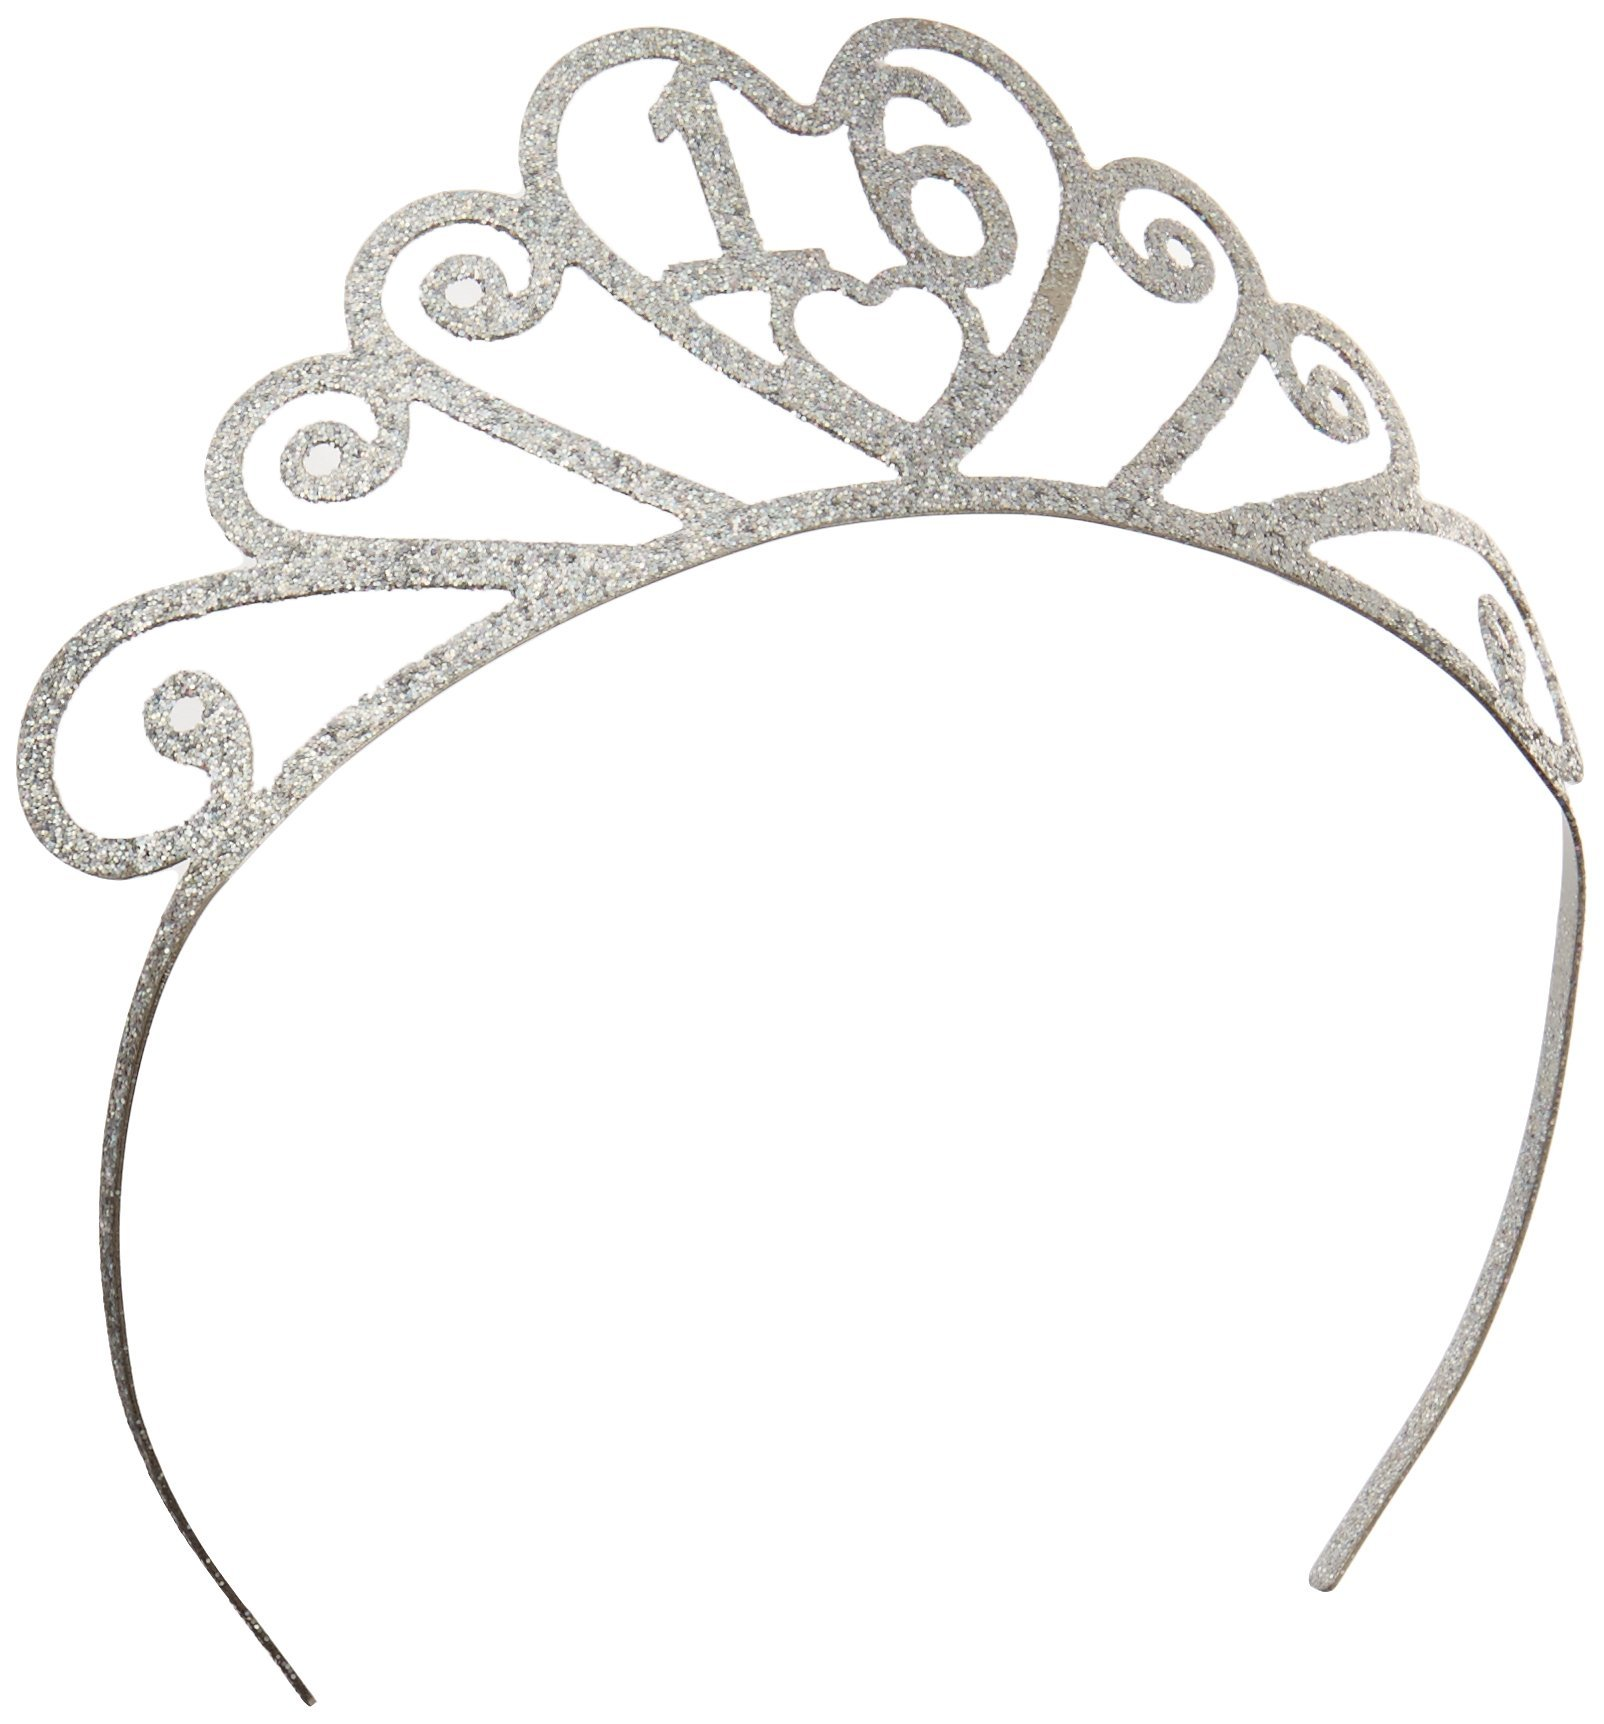 Beistle 60633-16 Glittered Metal 16 Tiara Party Décor